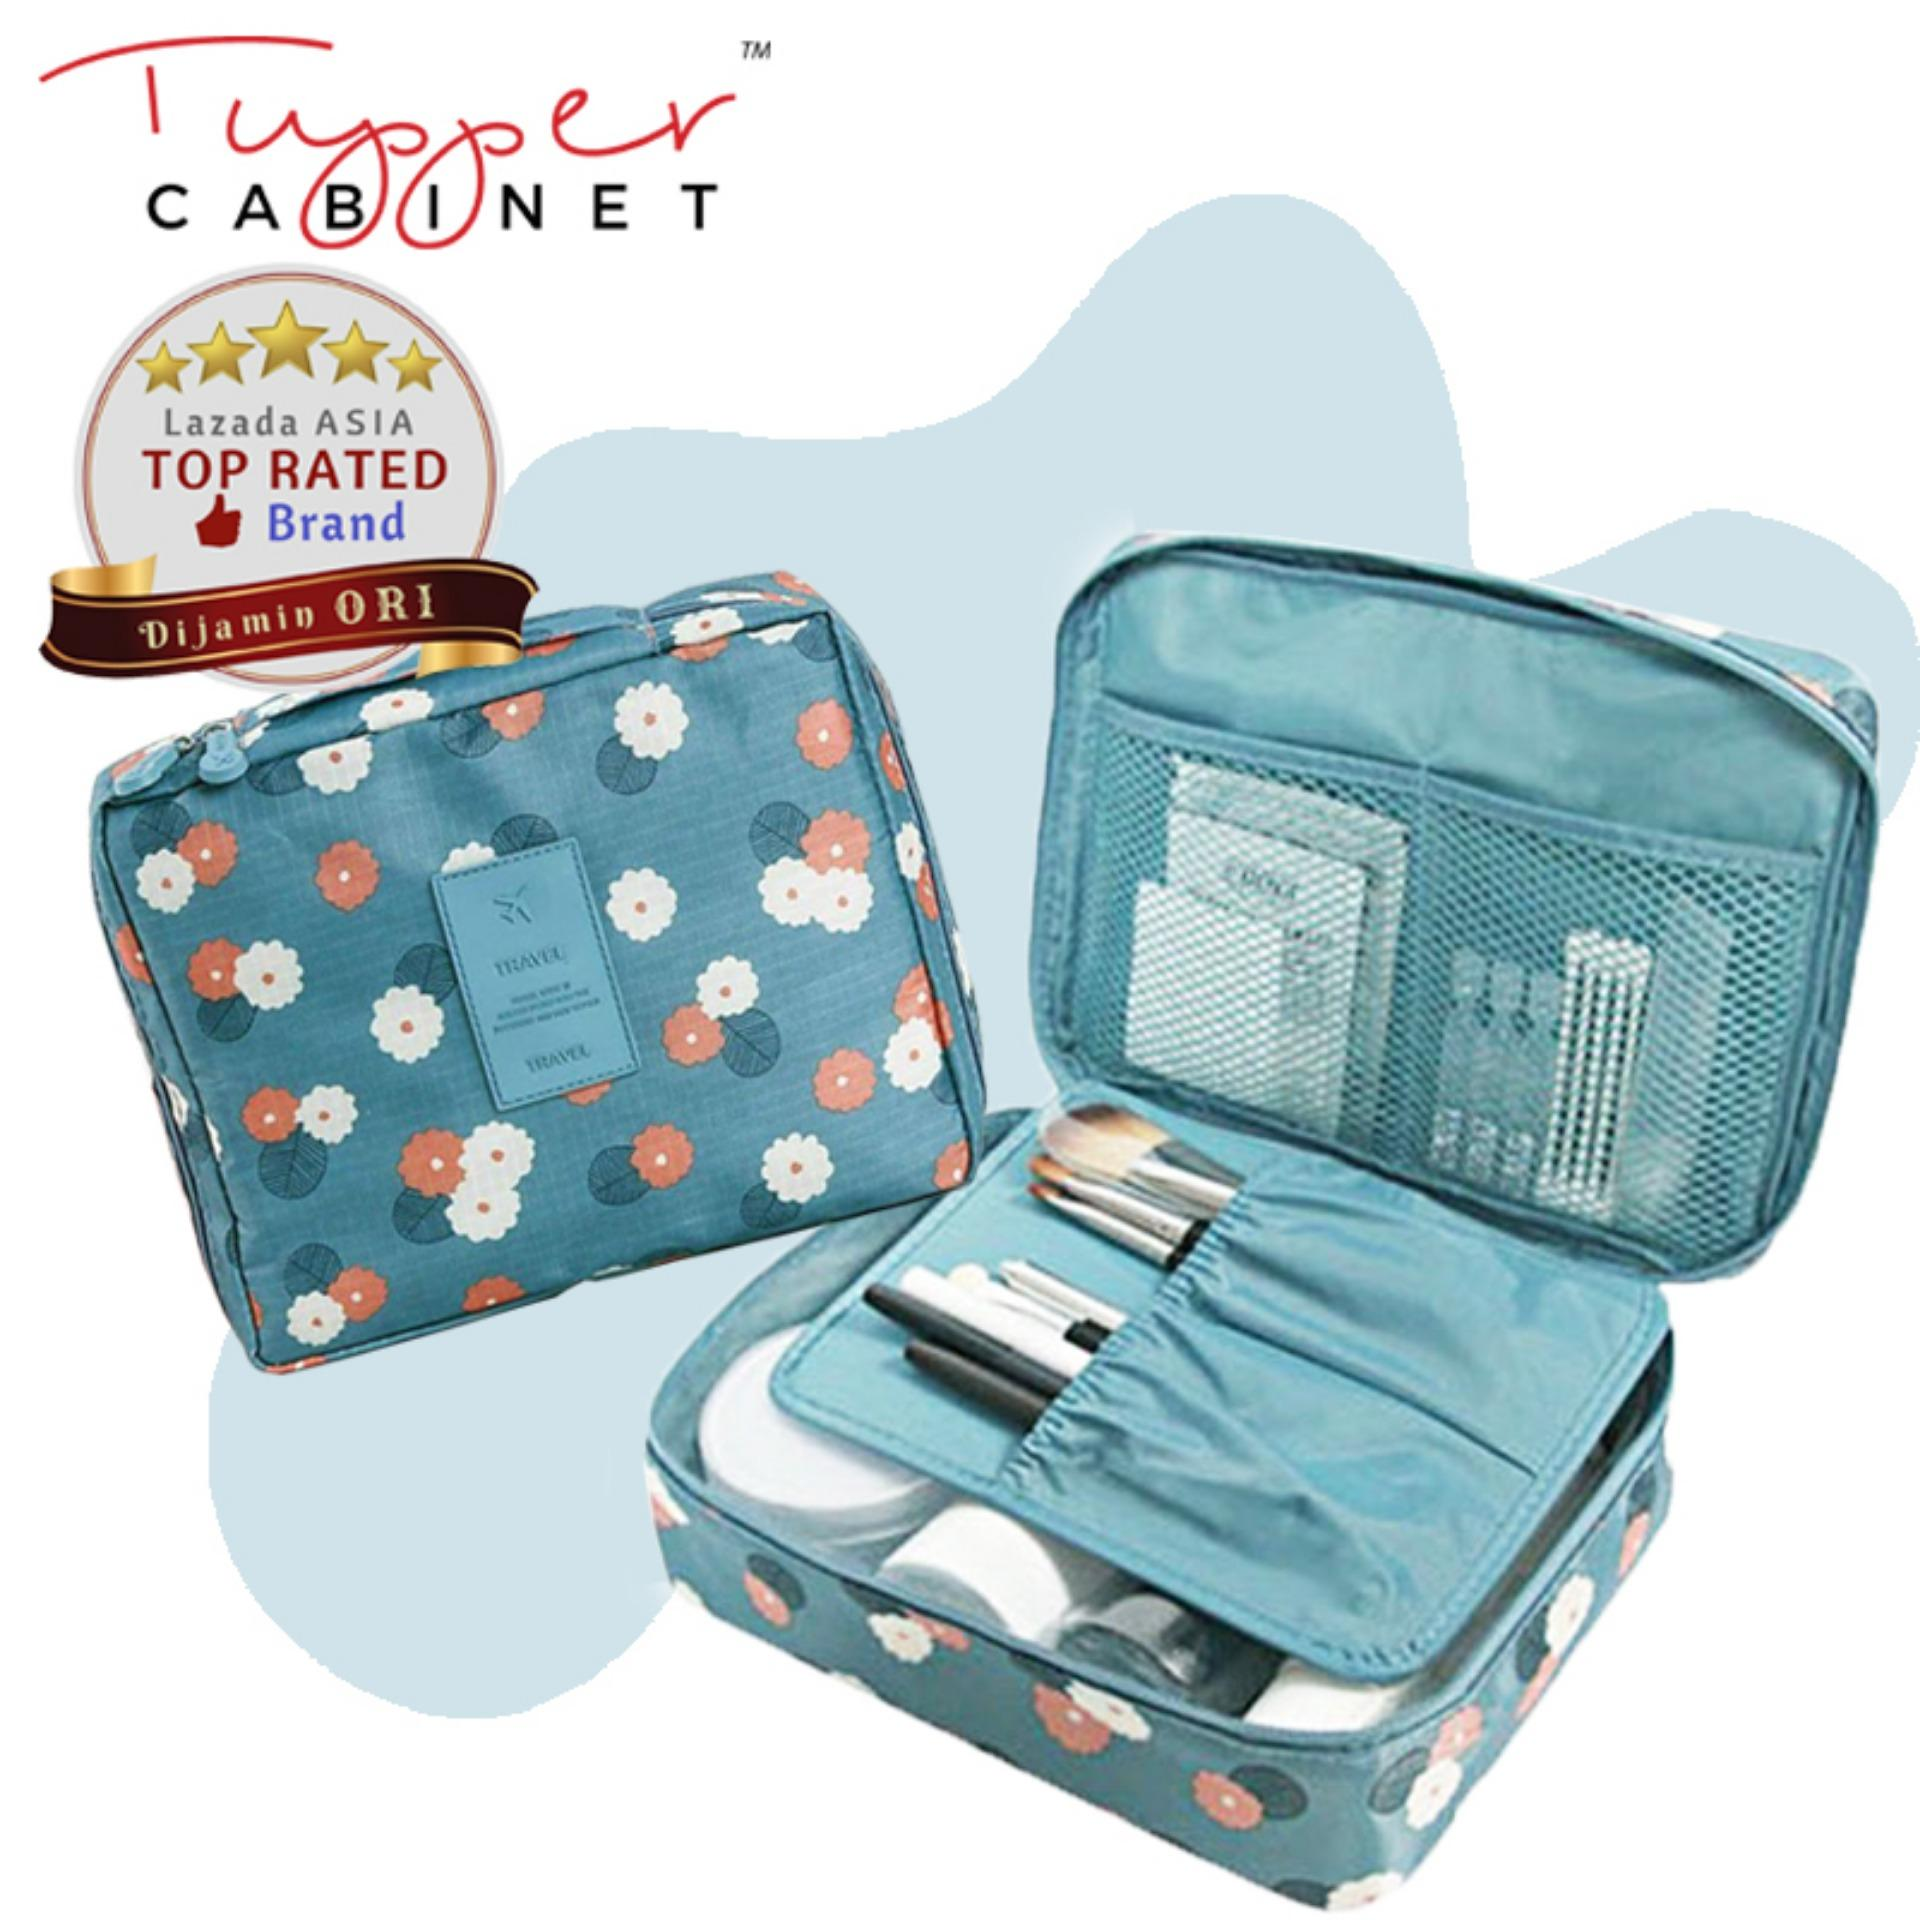 Tas Travel Pouch Kosmetik Tas Make up Organizer Toiletries Bag Tas Tangan Sabun Mandi Makeup Toiletries